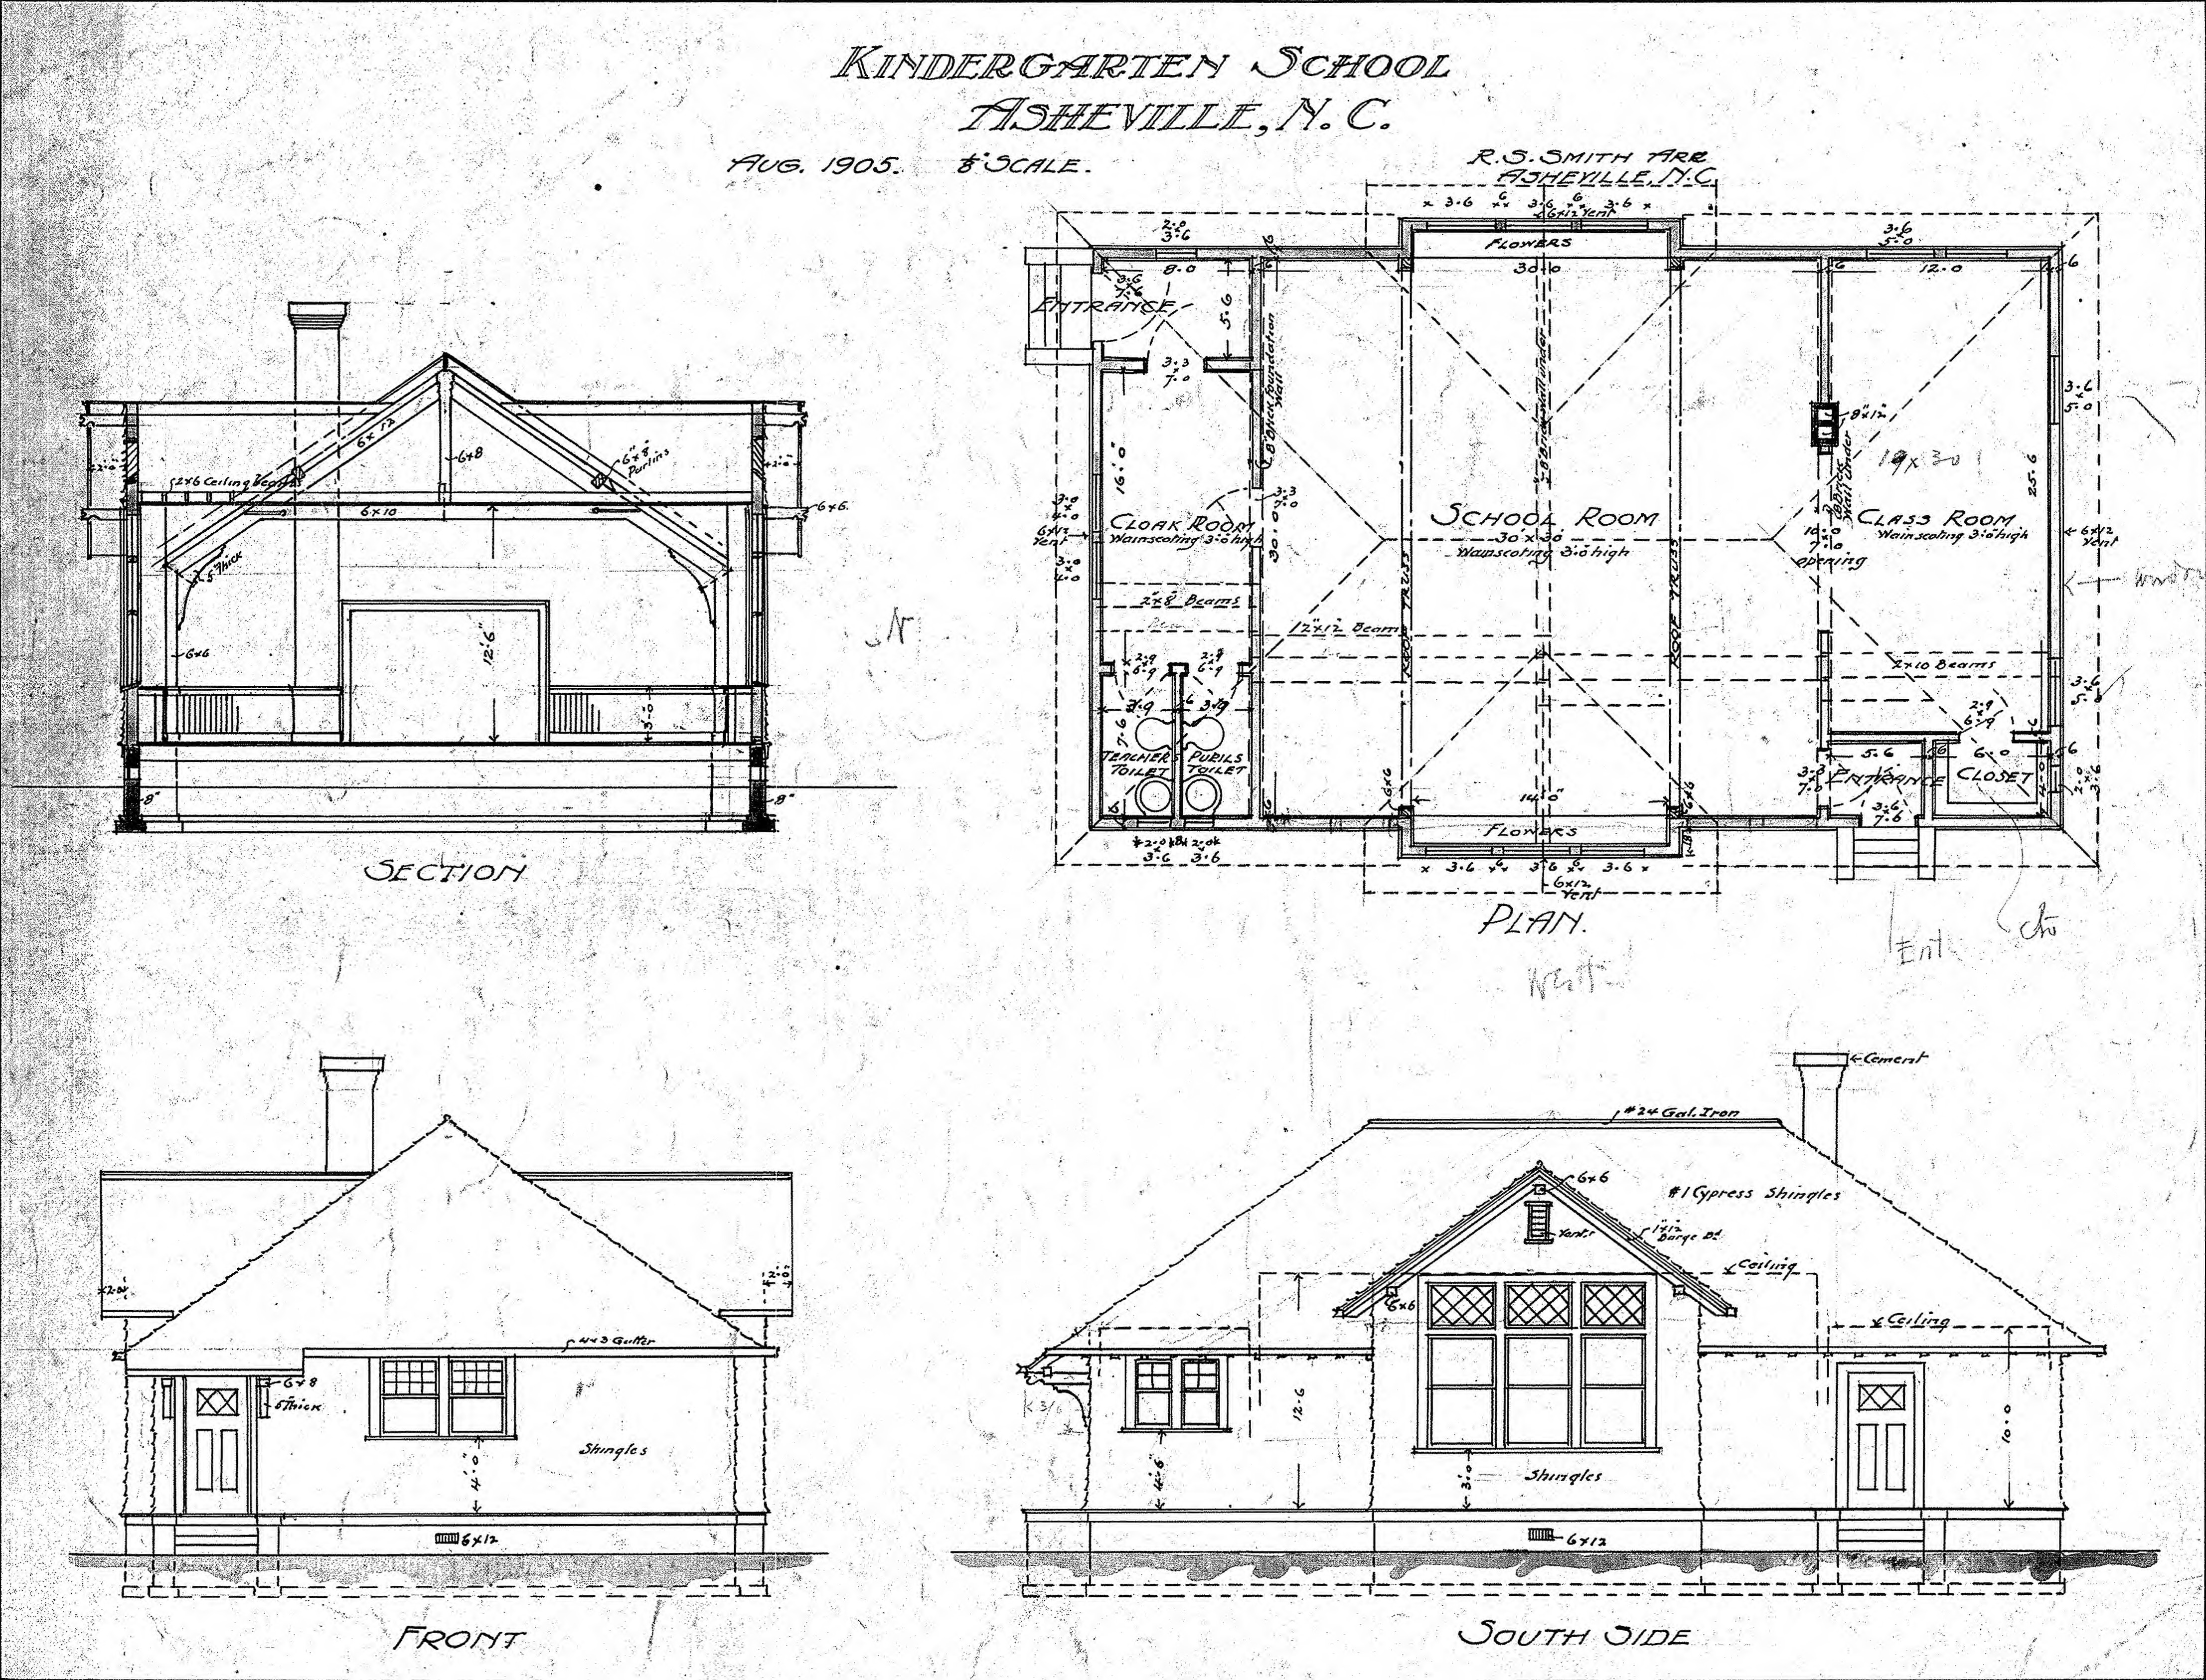 House plans elevation section ideas photo gallery home building